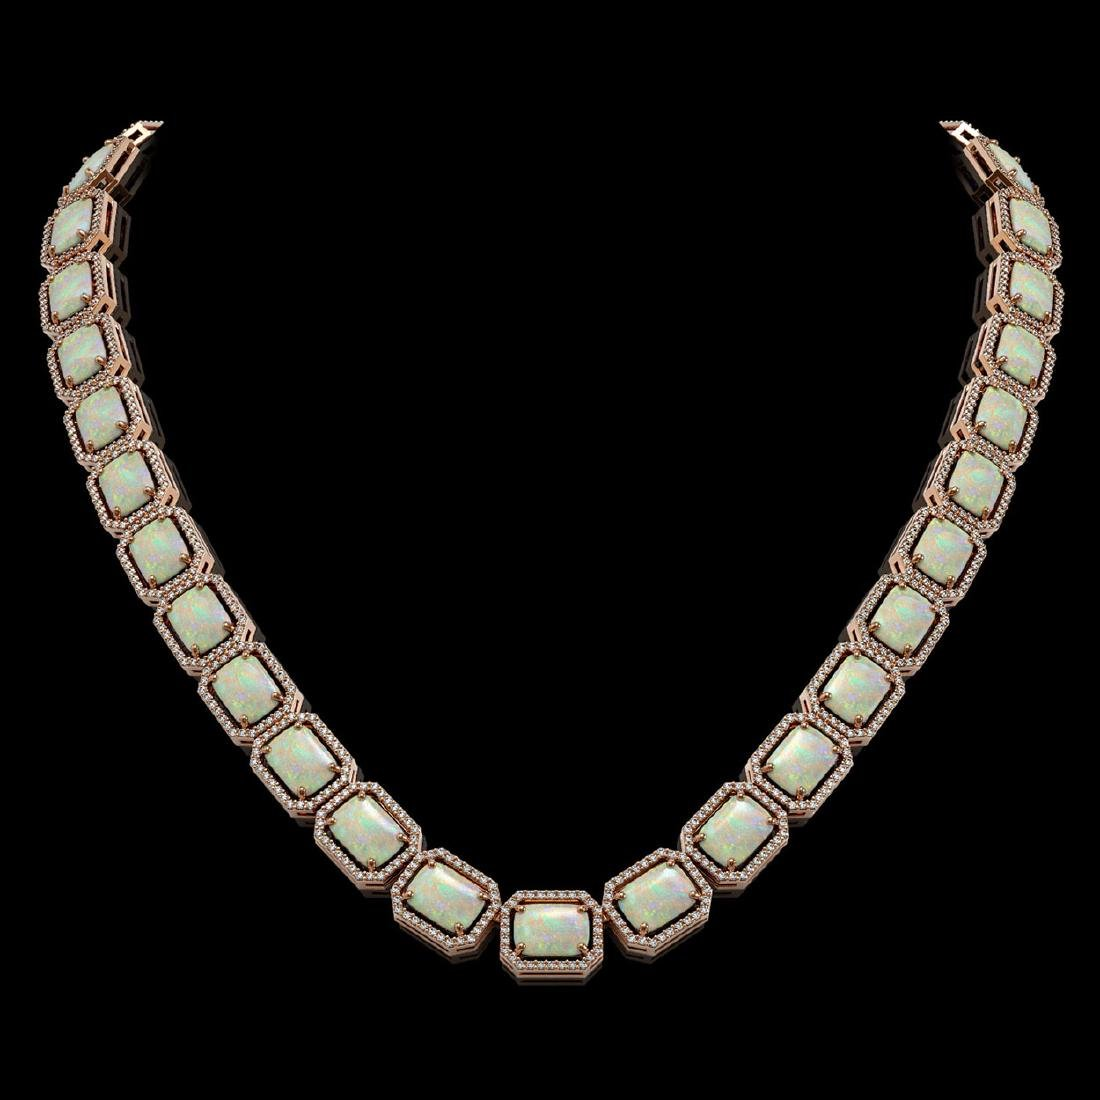 53.59 CTW Opal & Diamond Halo Necklace 10K Rose Gold